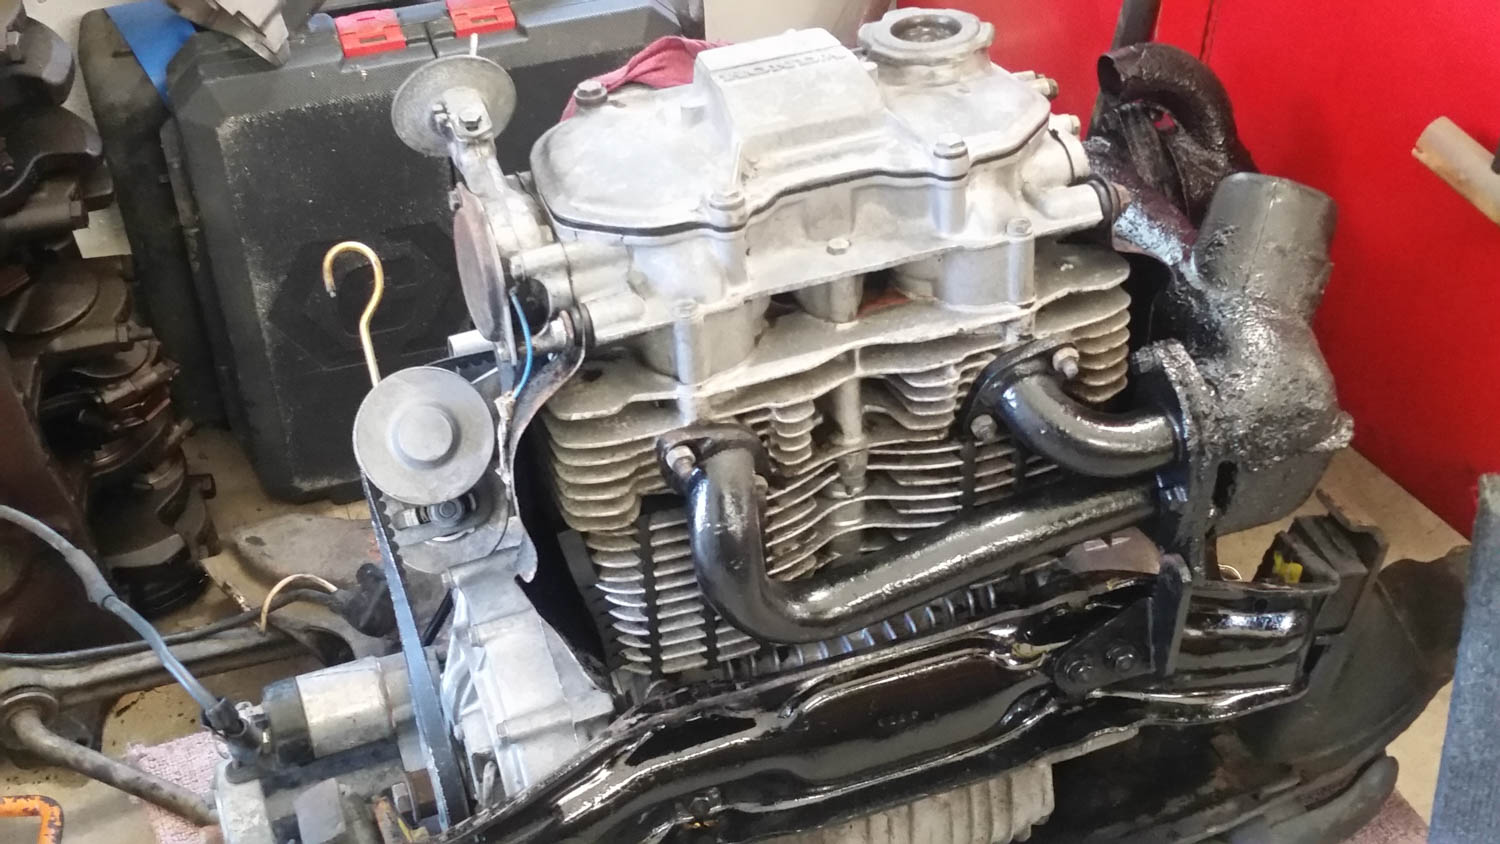 1971 Honda Z600 engine